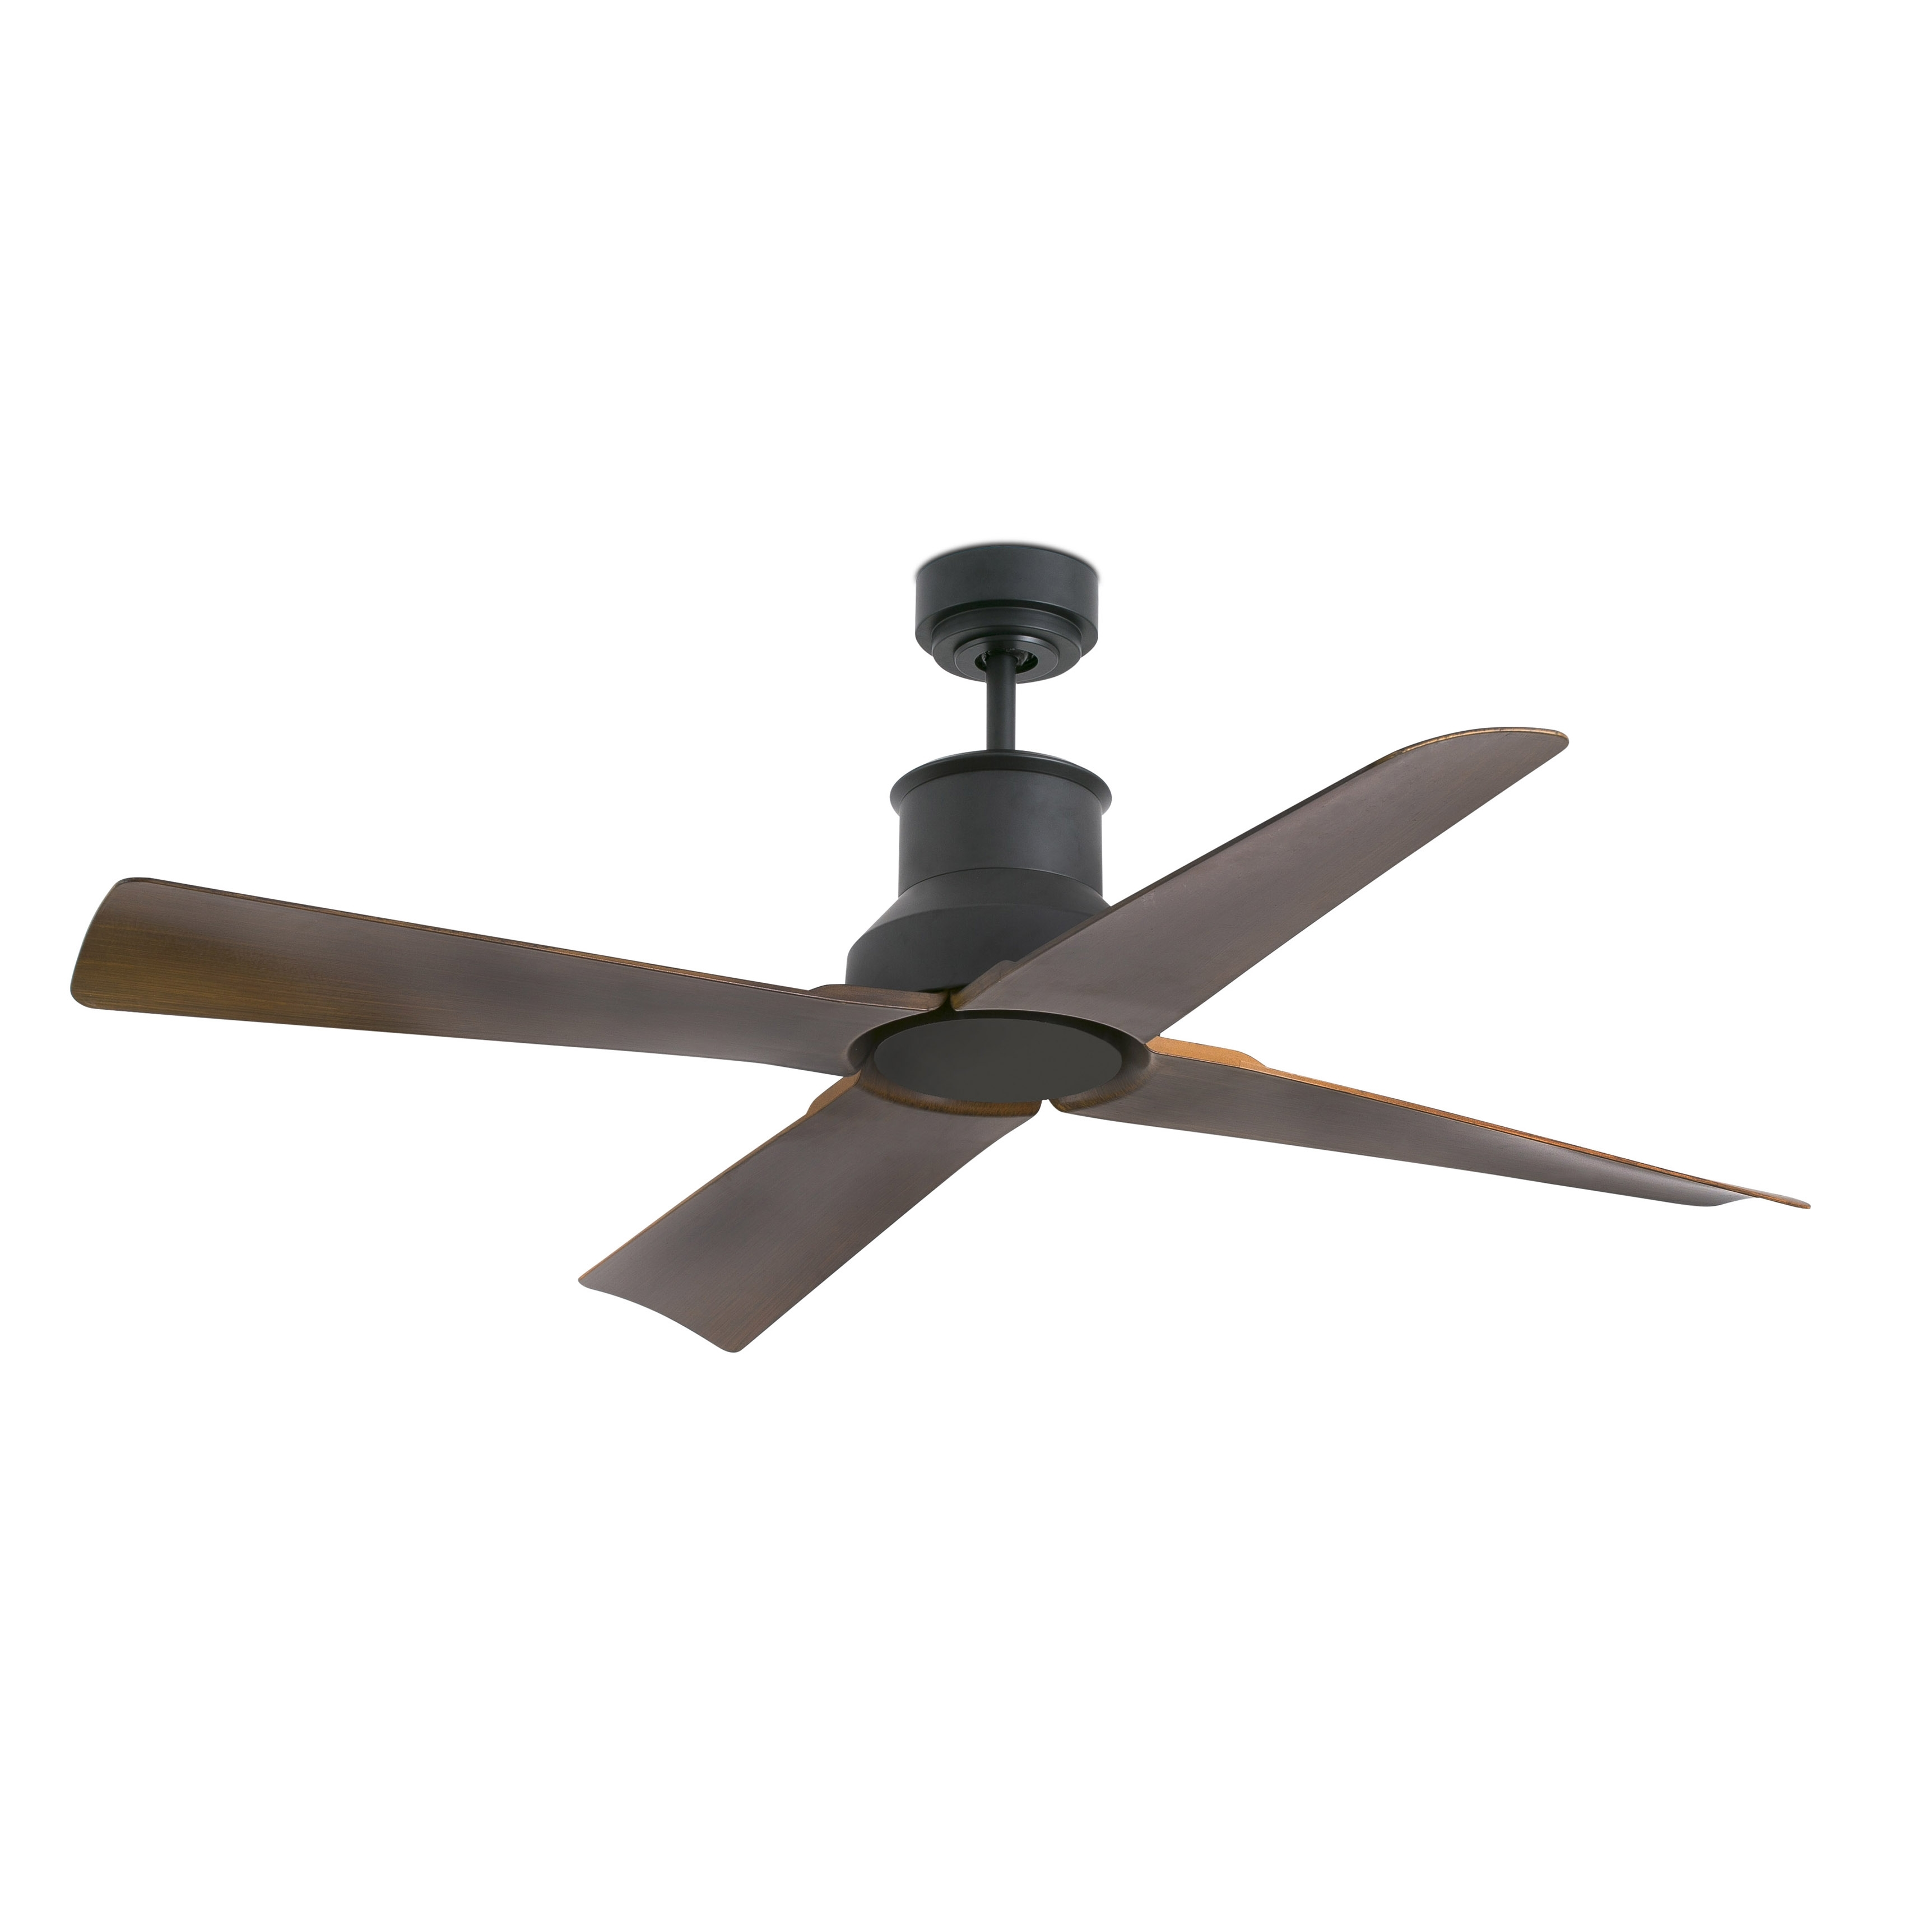 High Volume Outdoor Ceiling Fans For Newest Winche Brown Ceiling Fan With Dc Motor – Faro (View 6 of 20)